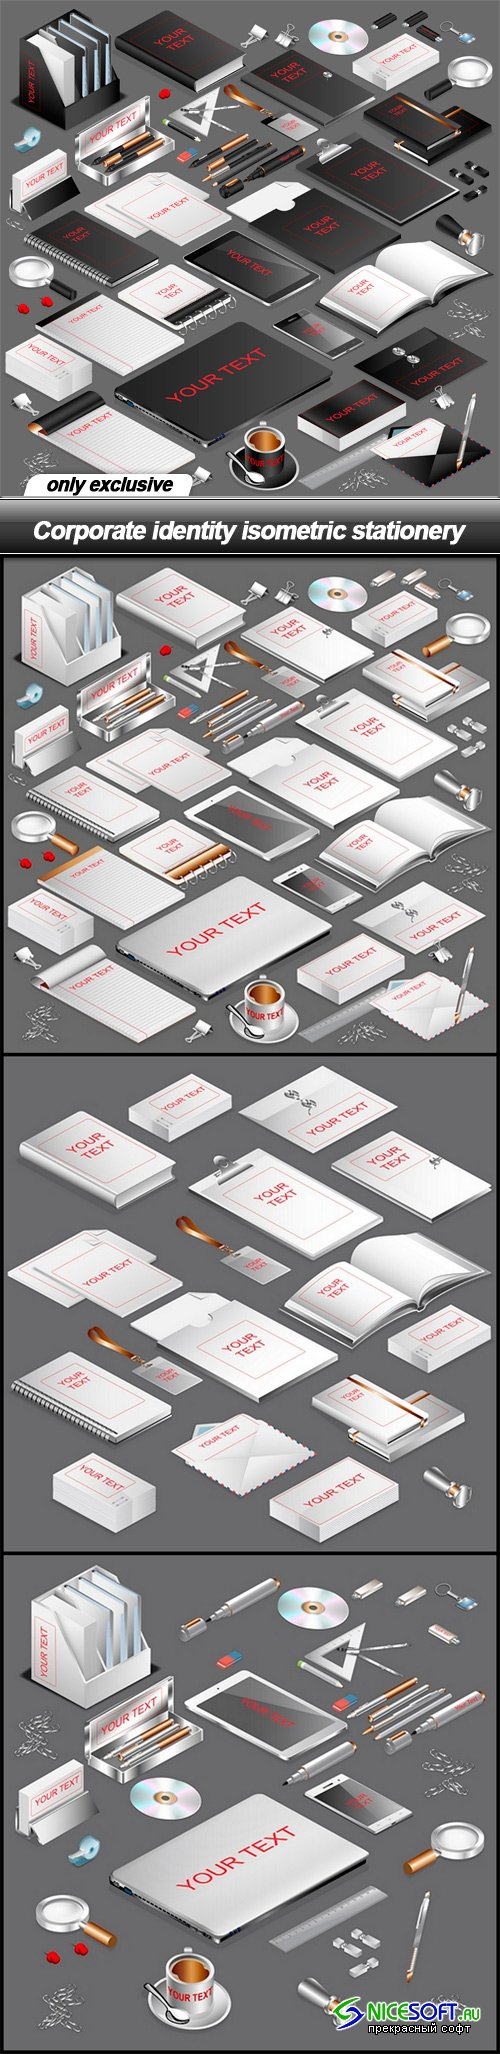 Corporate identity isometric stationery